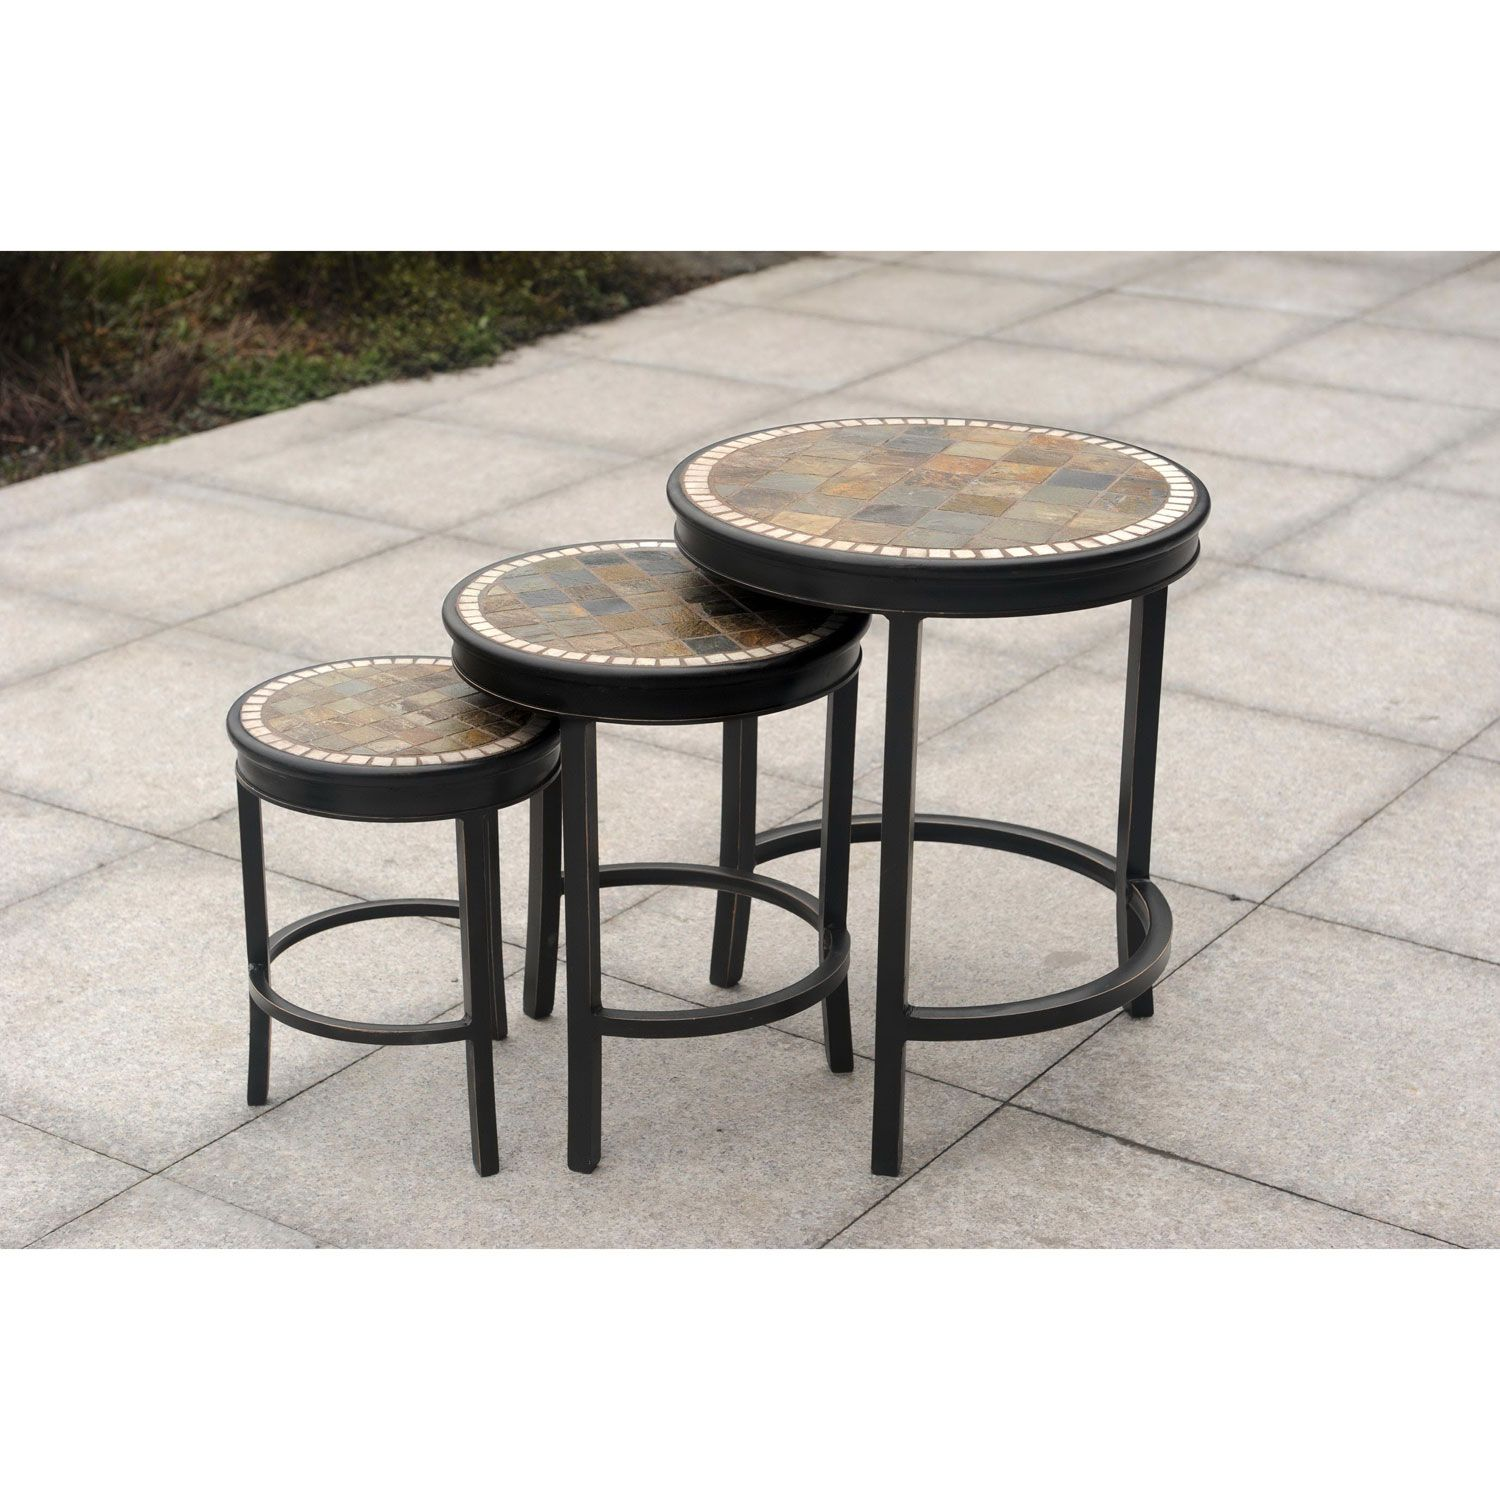 lovely patio accent table design uttermost tables outdoor concrete ashley furniture and chairs marble top coffee umbrella lights terrace colorful target waldo farm style with